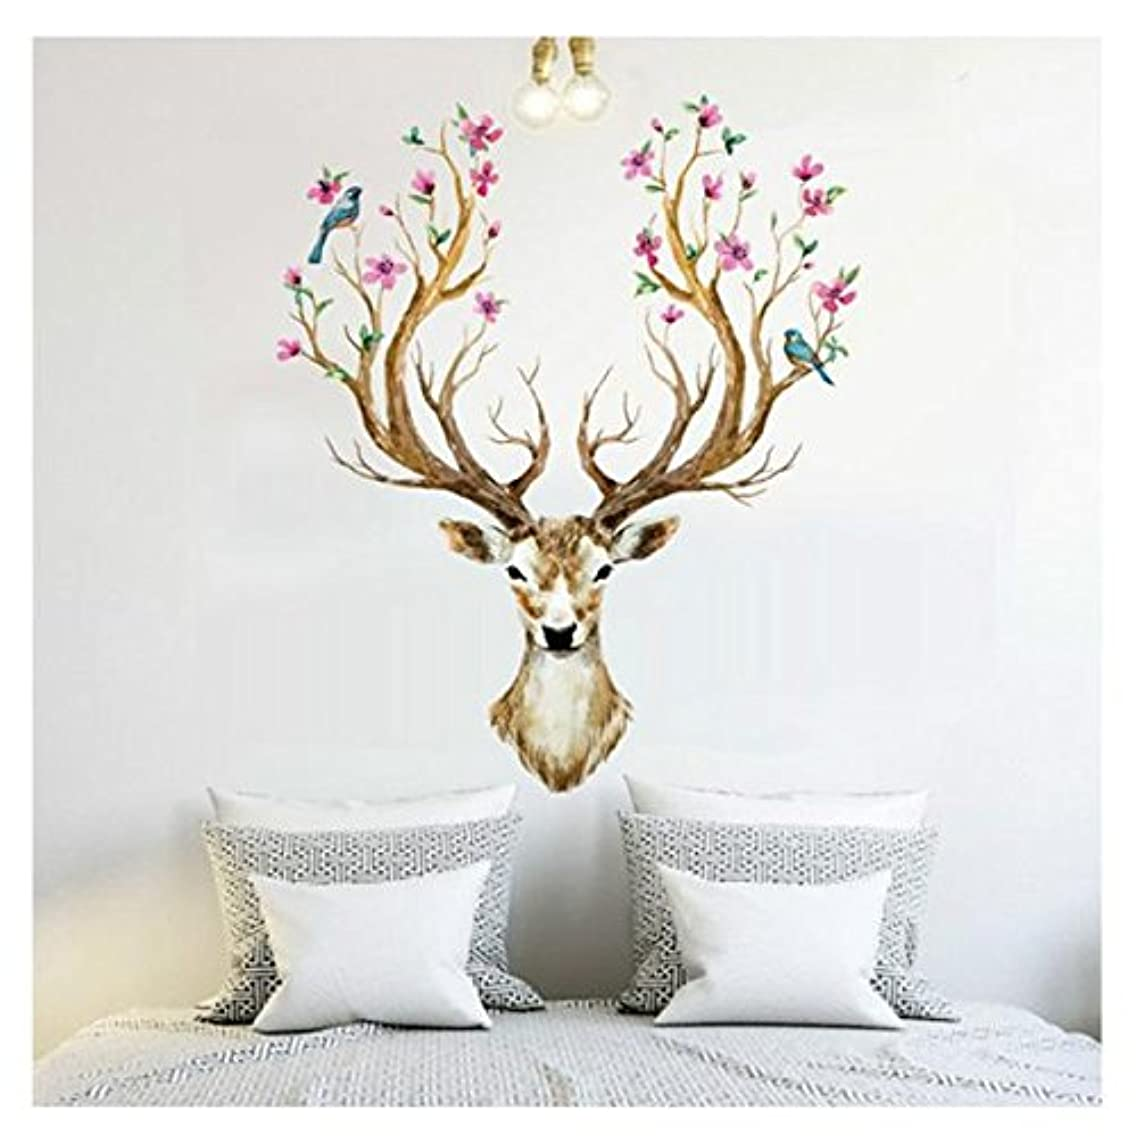 Wall Stickers,Baomabao 3D Plum flower deer Wall Stickers Removable Waterproof Home Decor